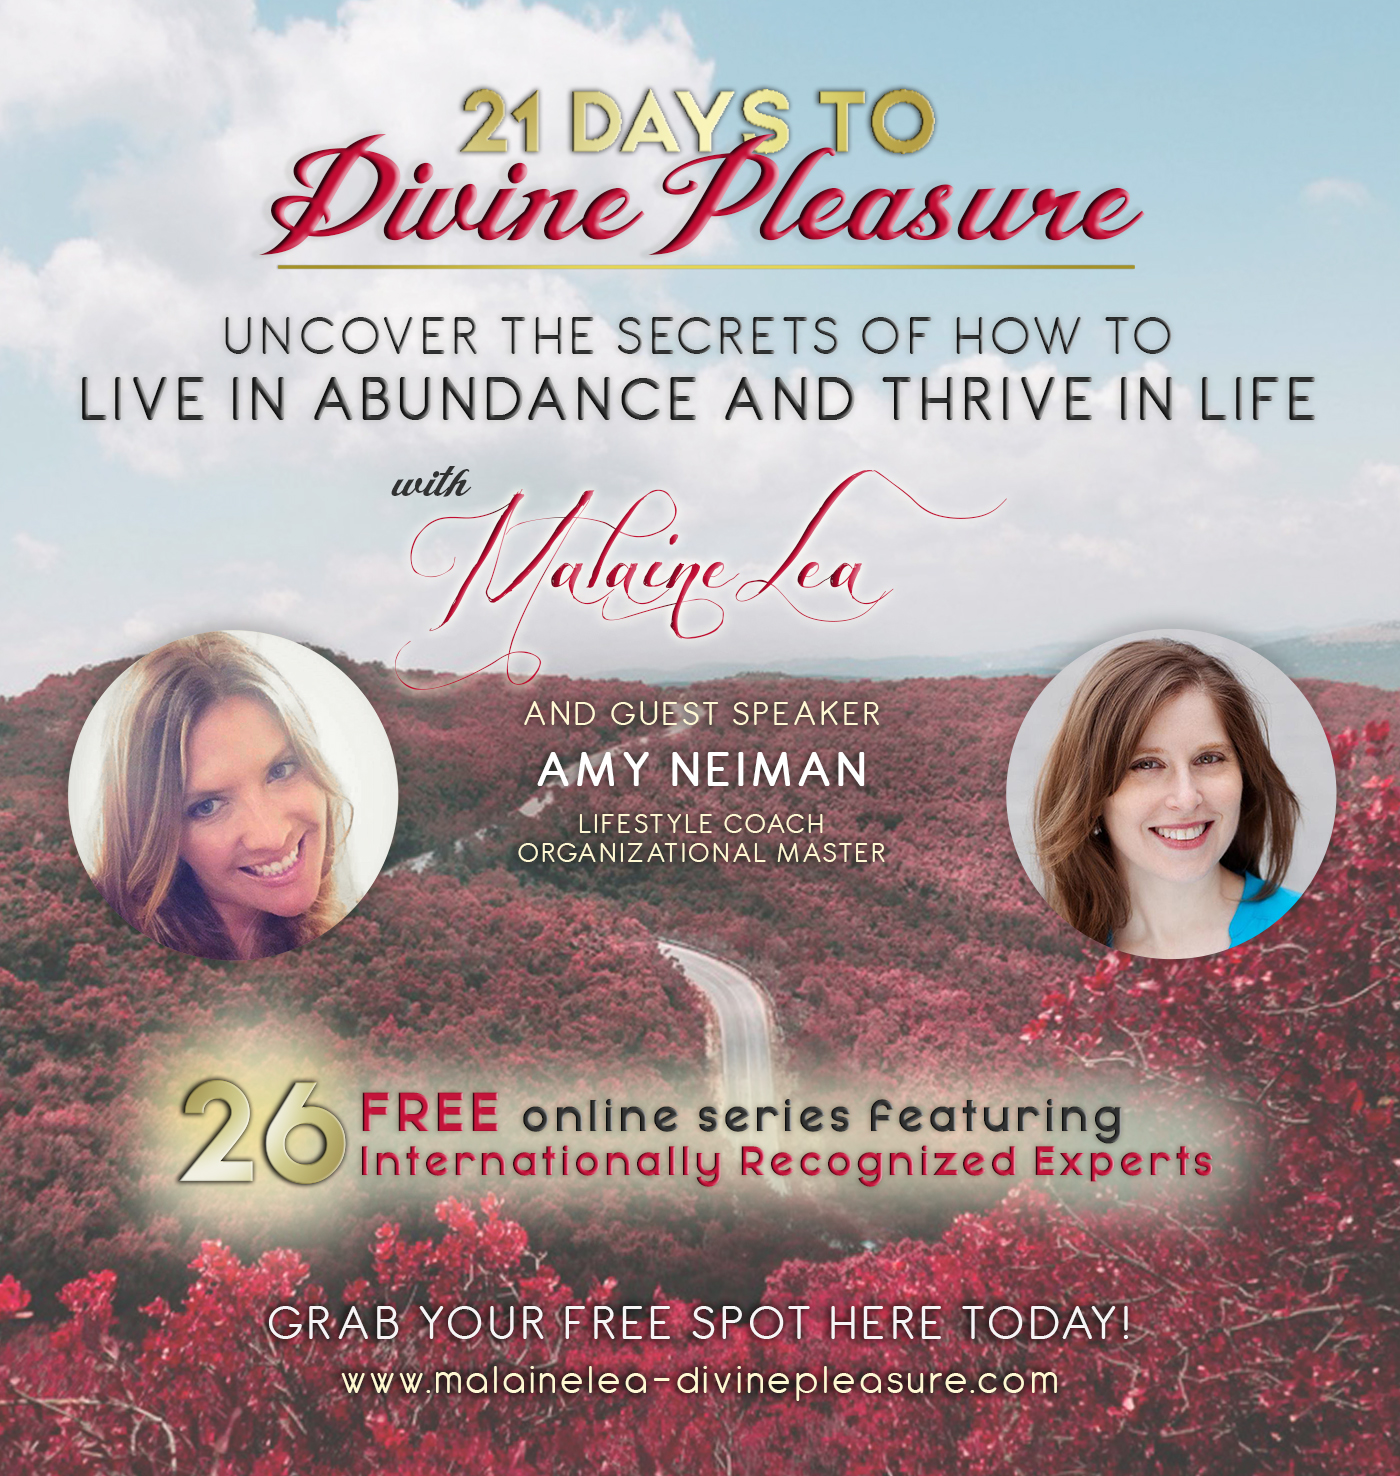 21 Days to Divine Pleasure: starts November 4, 2016